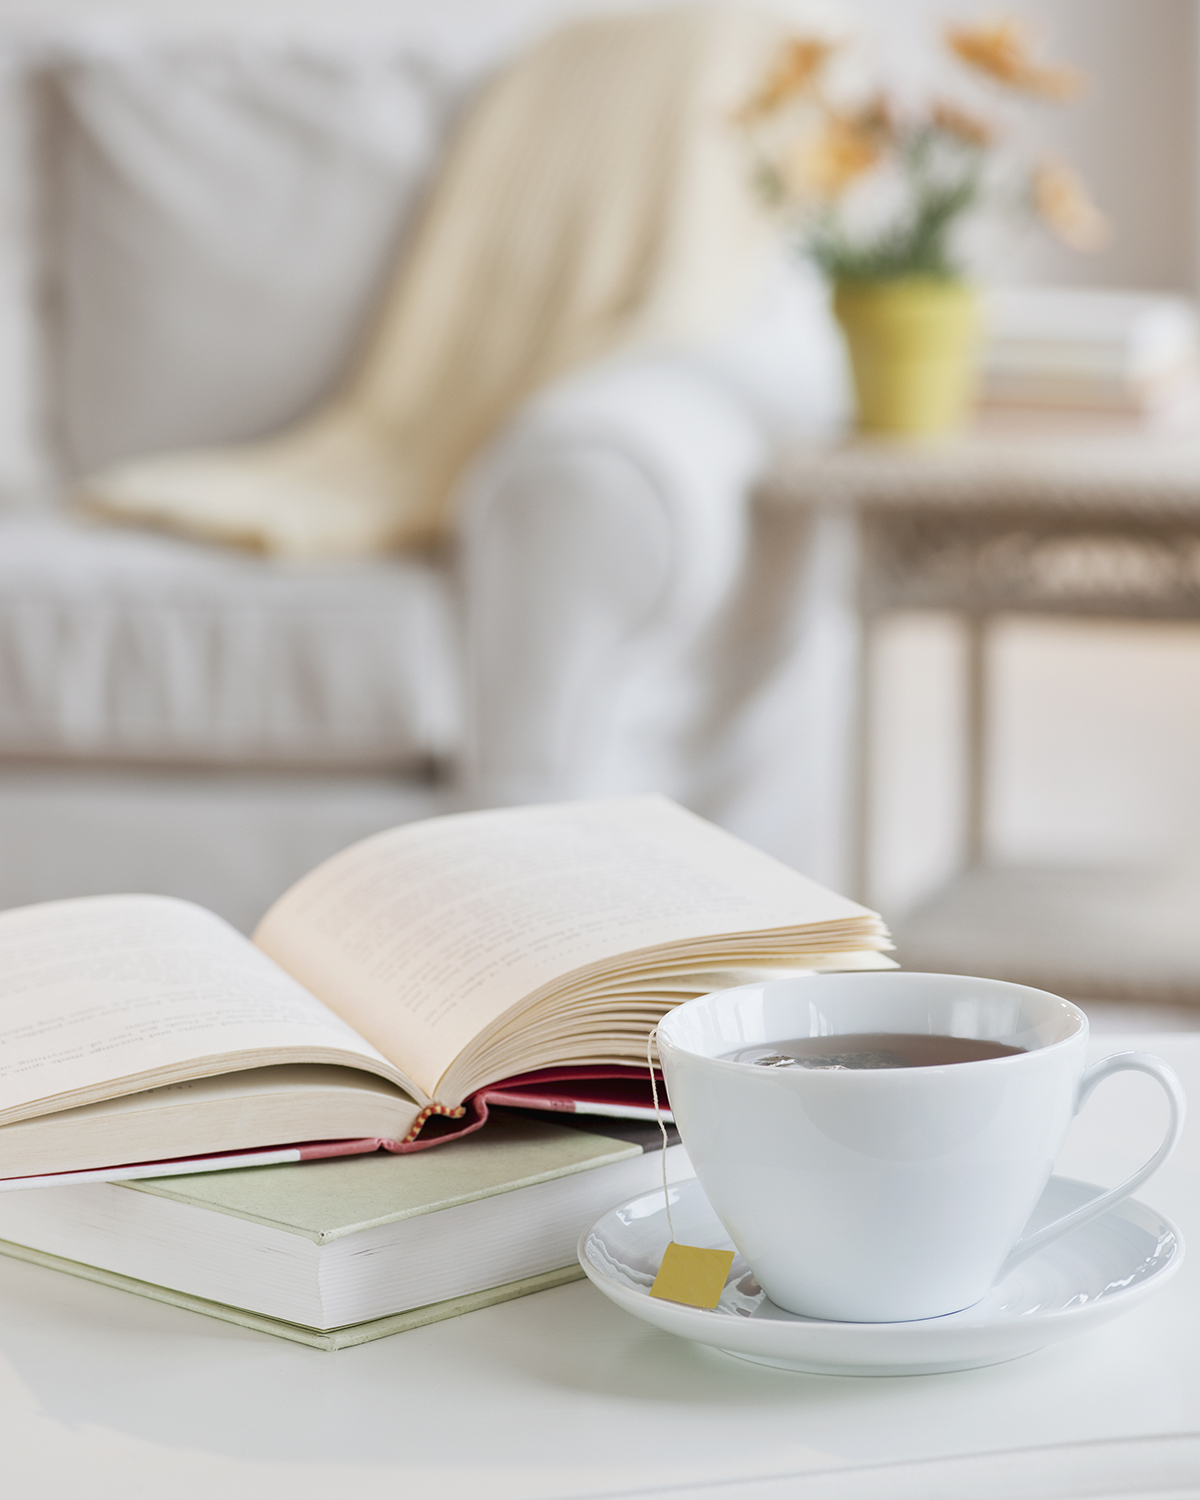 Coffee and book on a table.